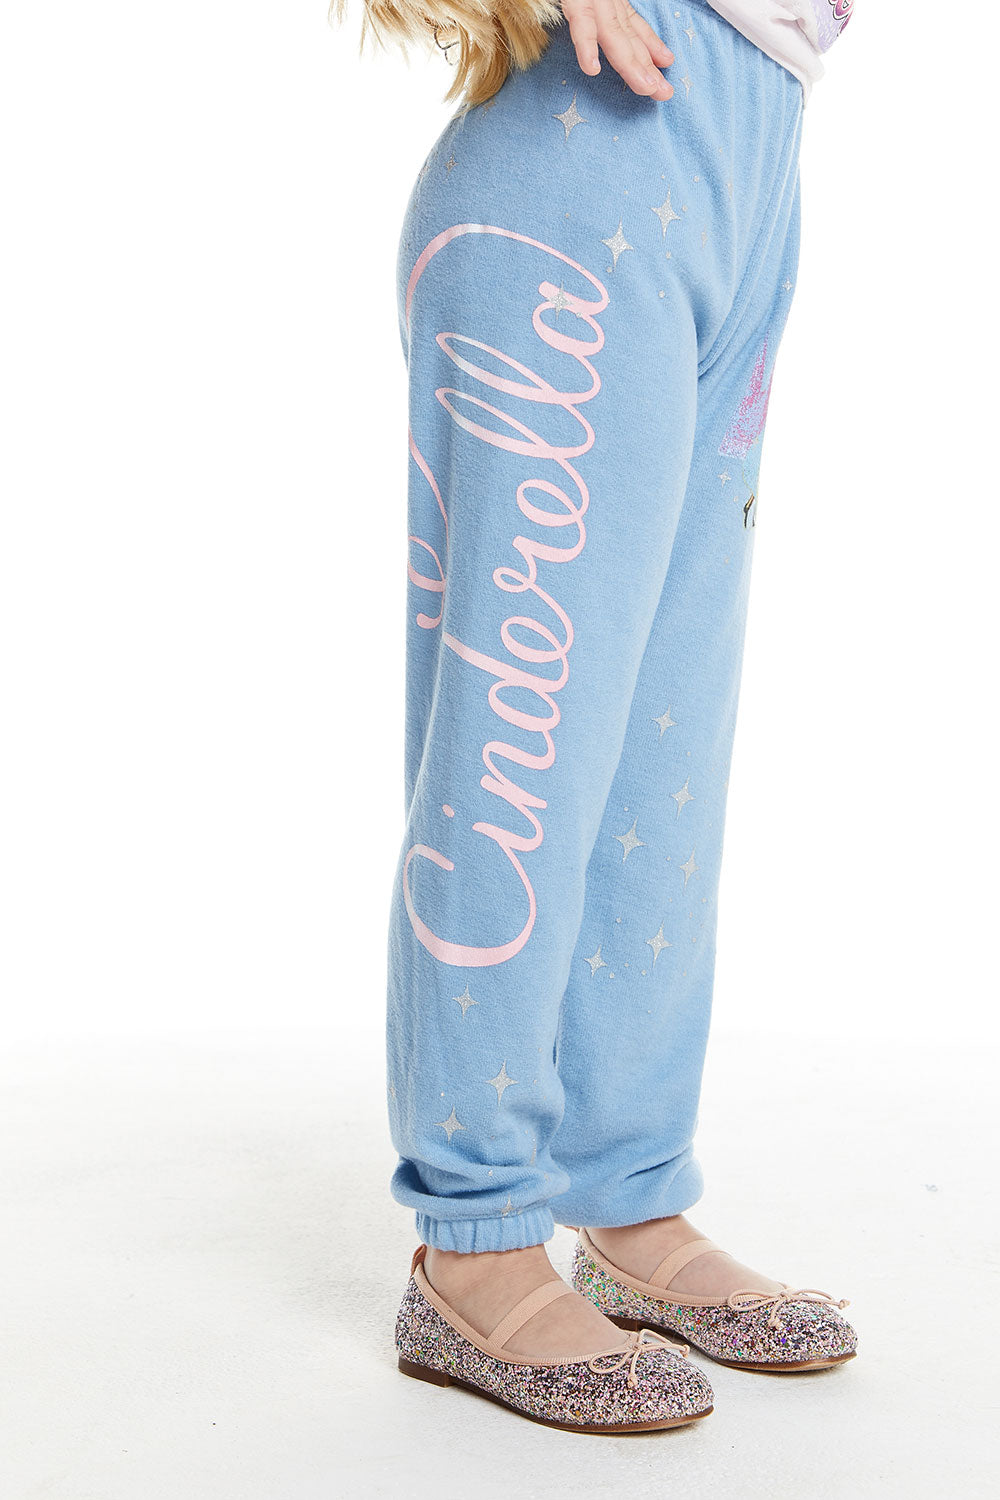 Disney's Cinderella - Happily Ever After Pants